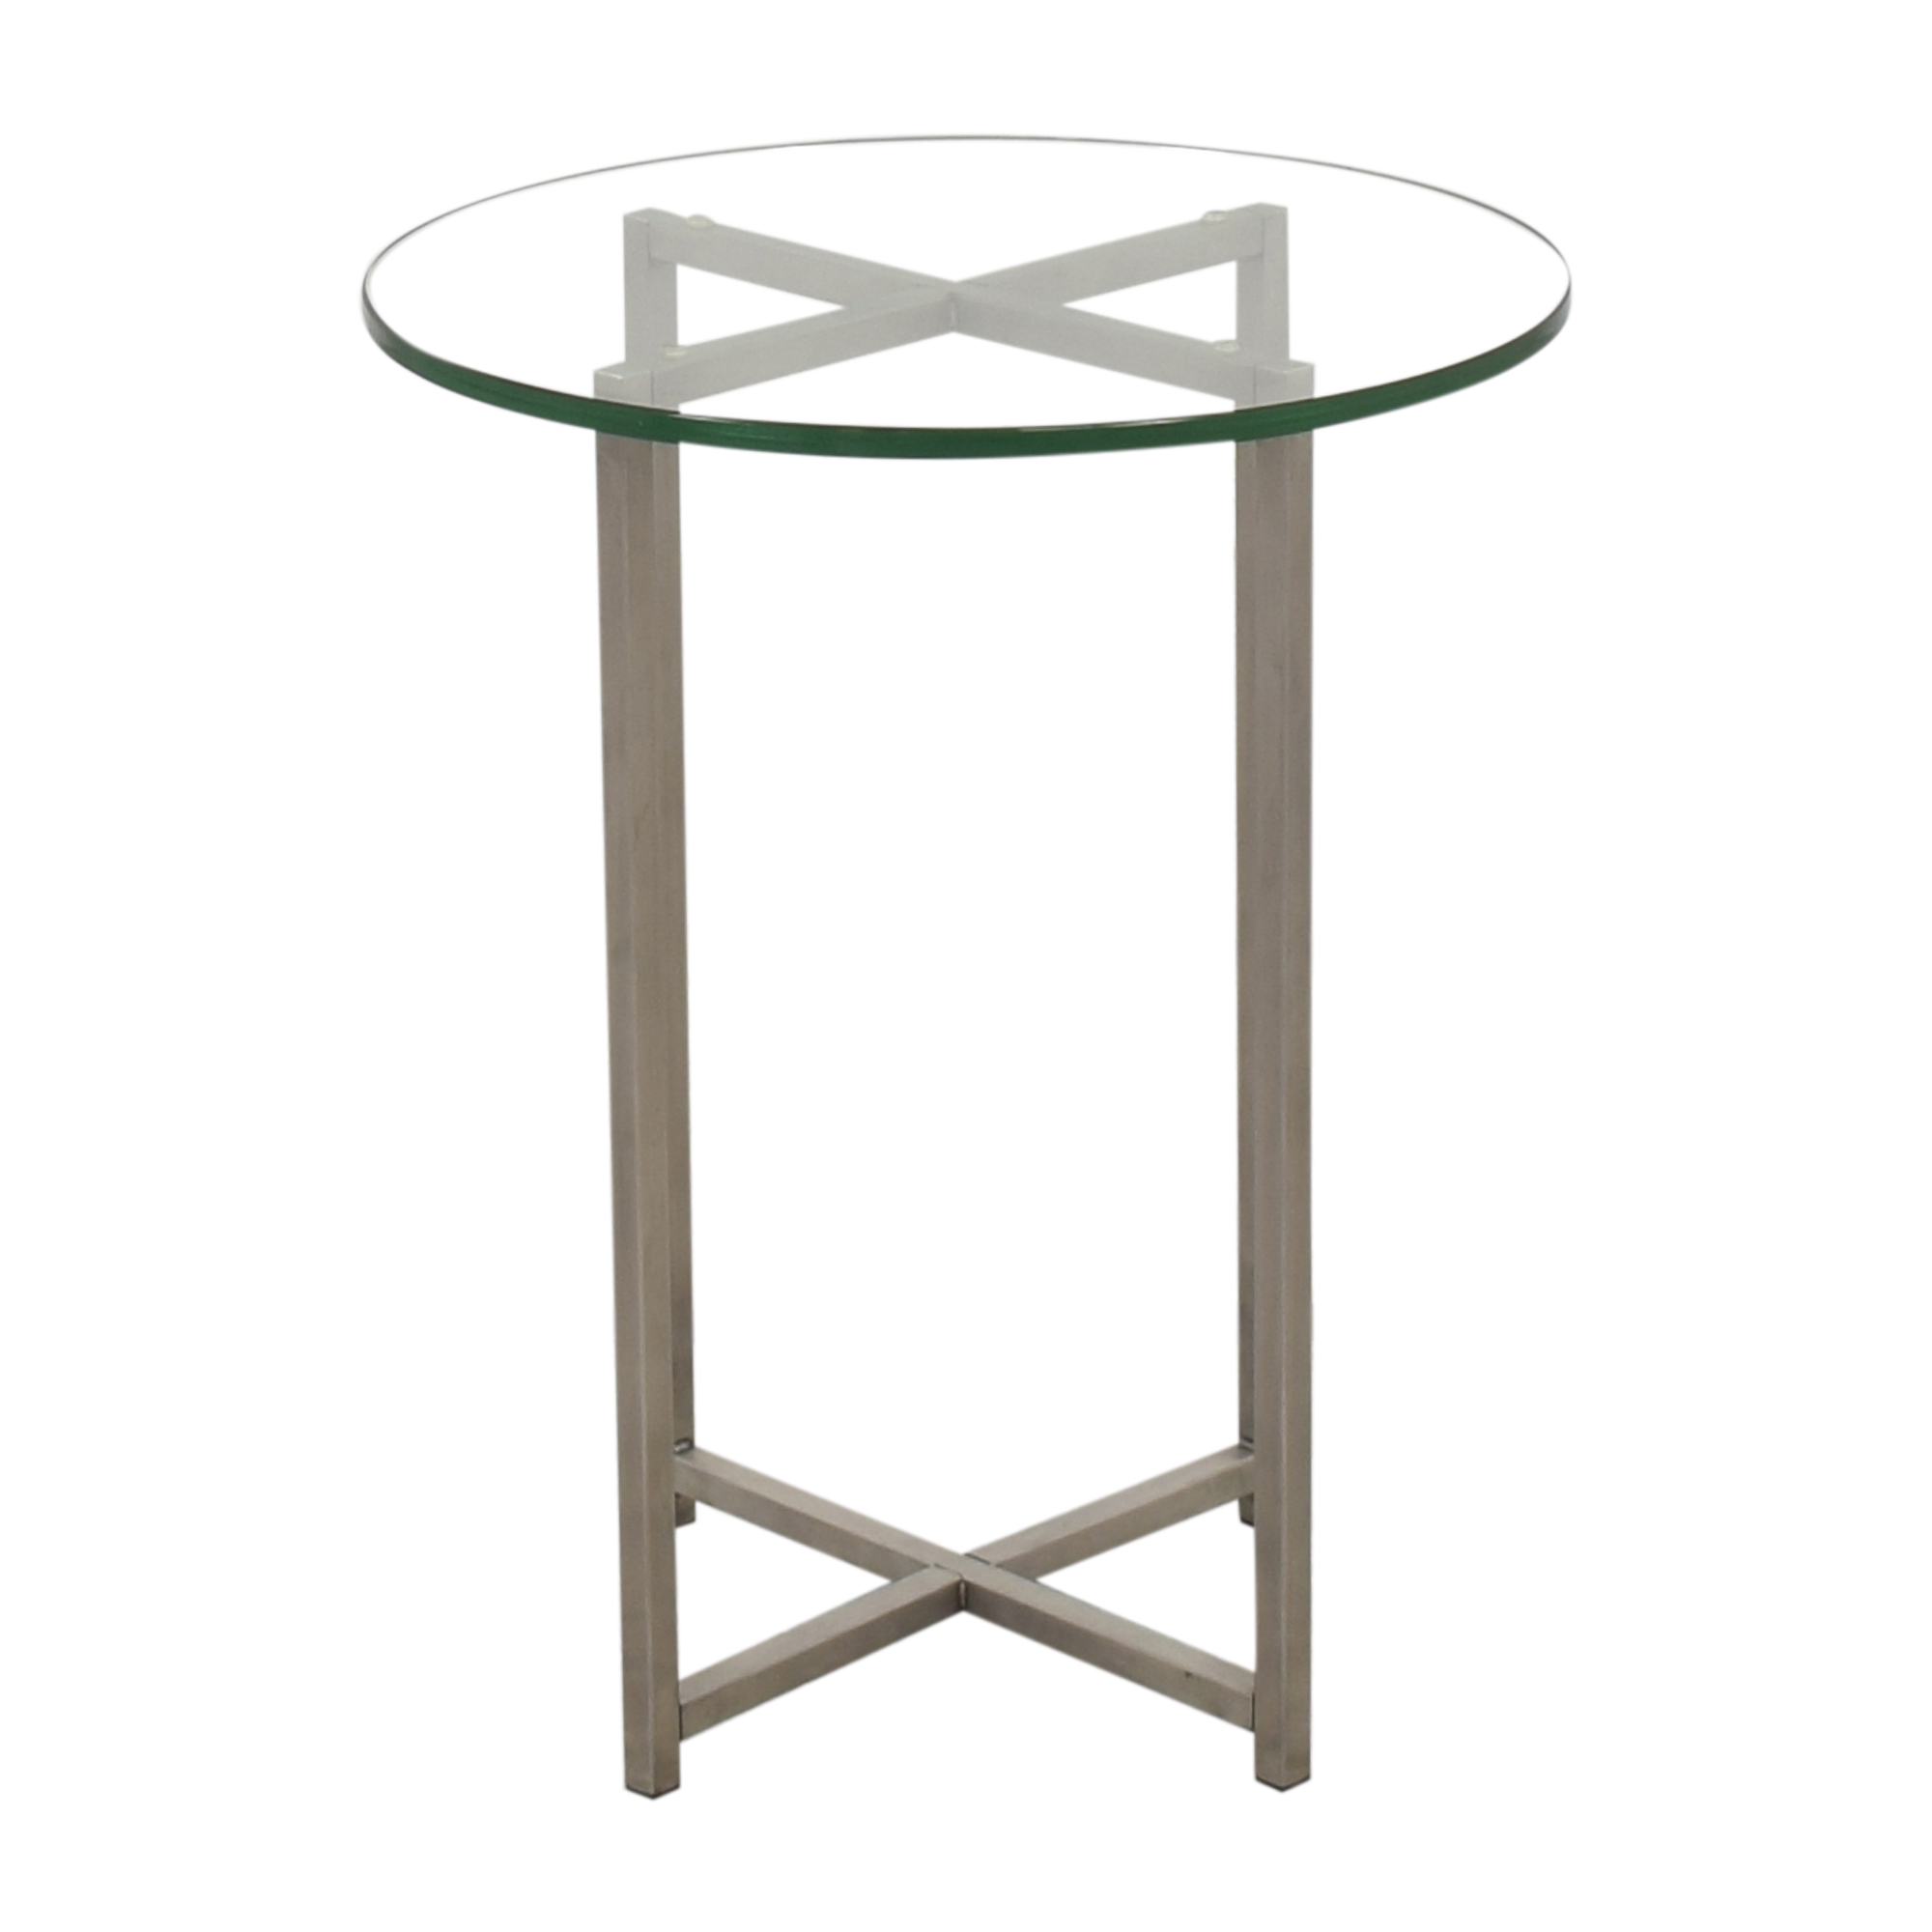 Room & Board Room & Board Classic End Table price